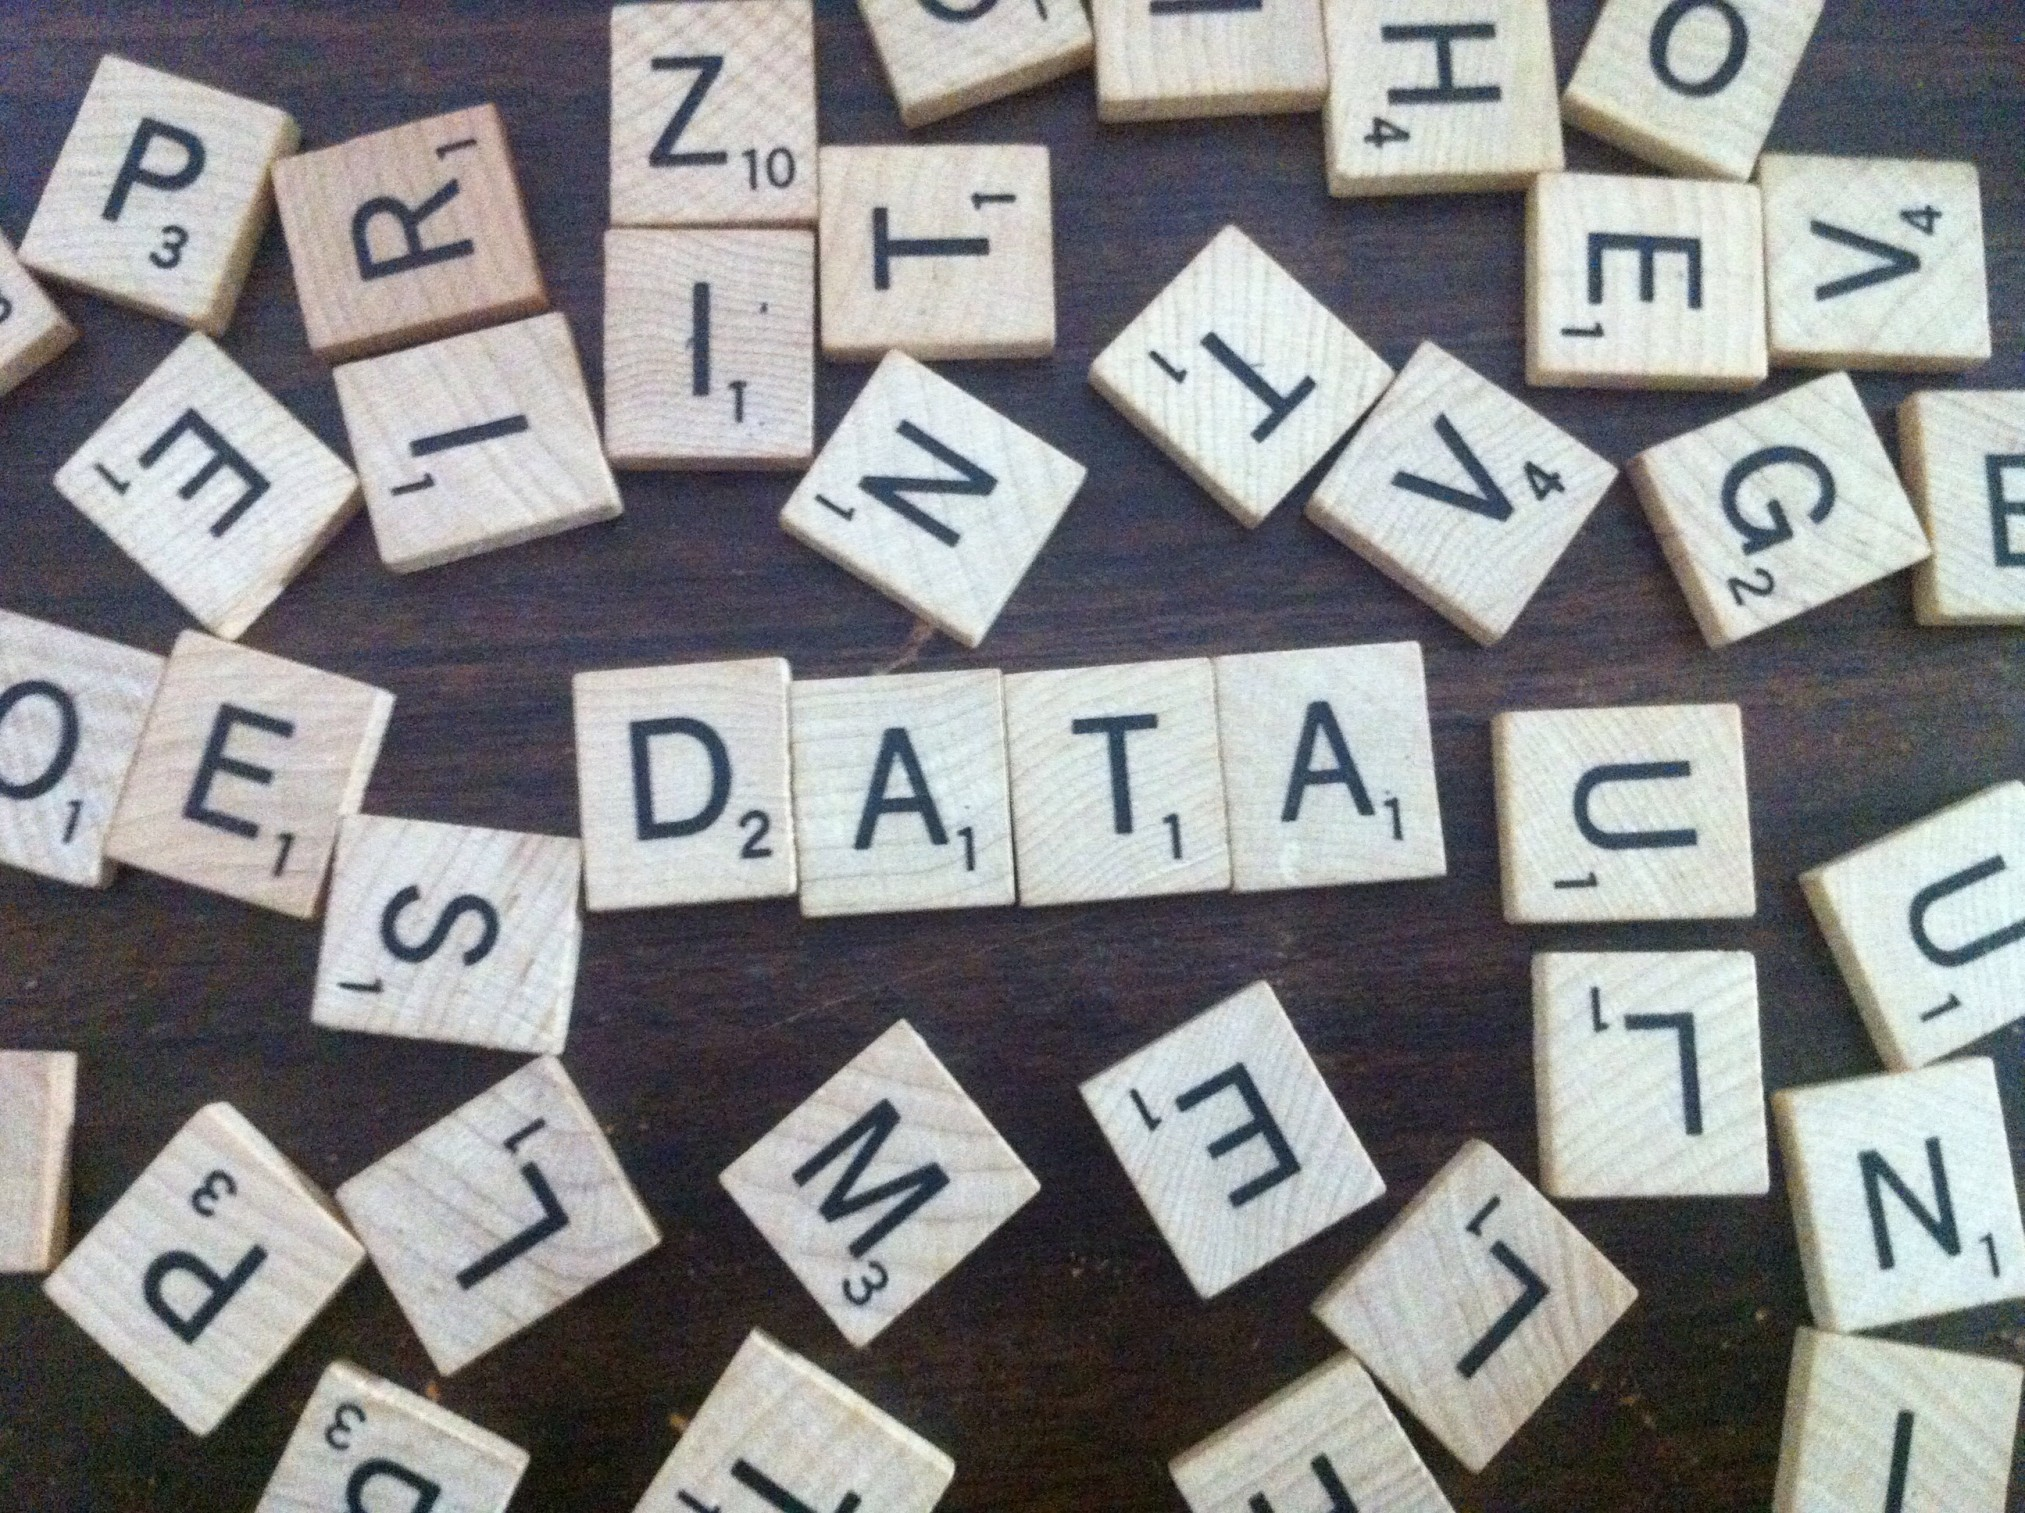 Data-Scrabble-Pieces